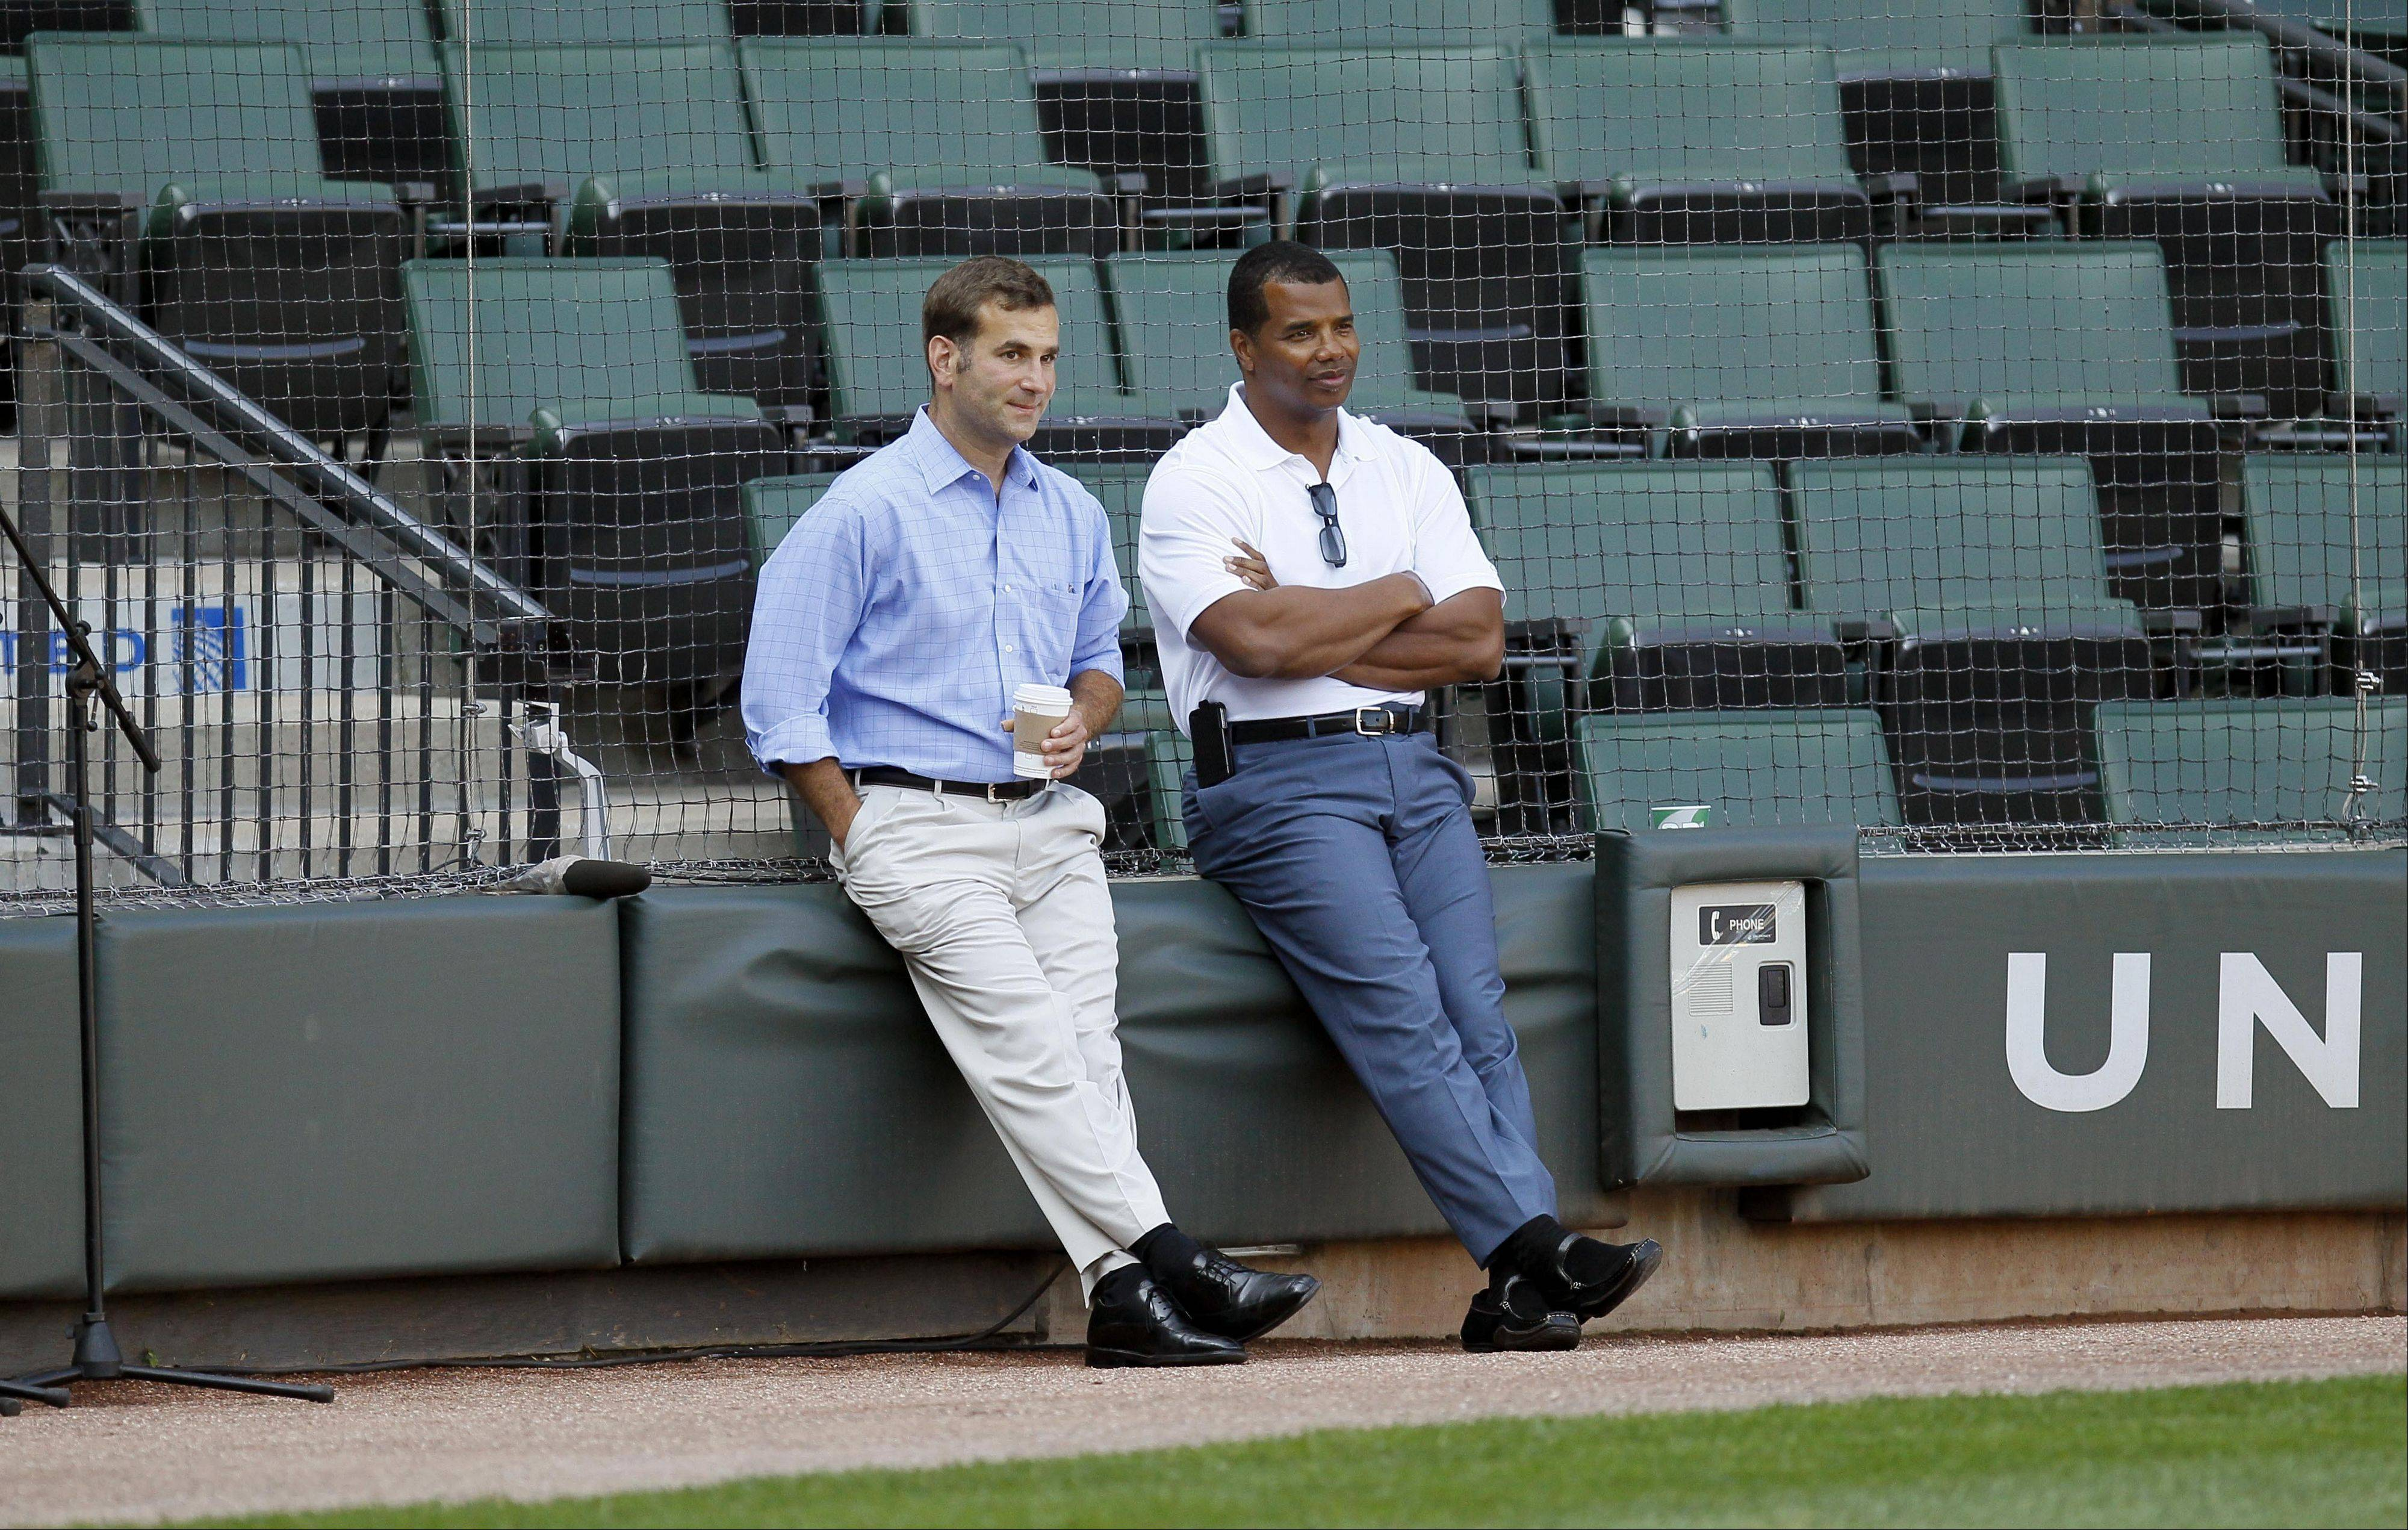 One national report says the White Sox will promote general manager Kenny Williams, right, to vice president of baseball operations and give the GM role to Rick Hahn, left. The move would be similar to what Jerry Reinsdorf did with the Bulls when John Paxson was promoted and Gar Forman named general manager.